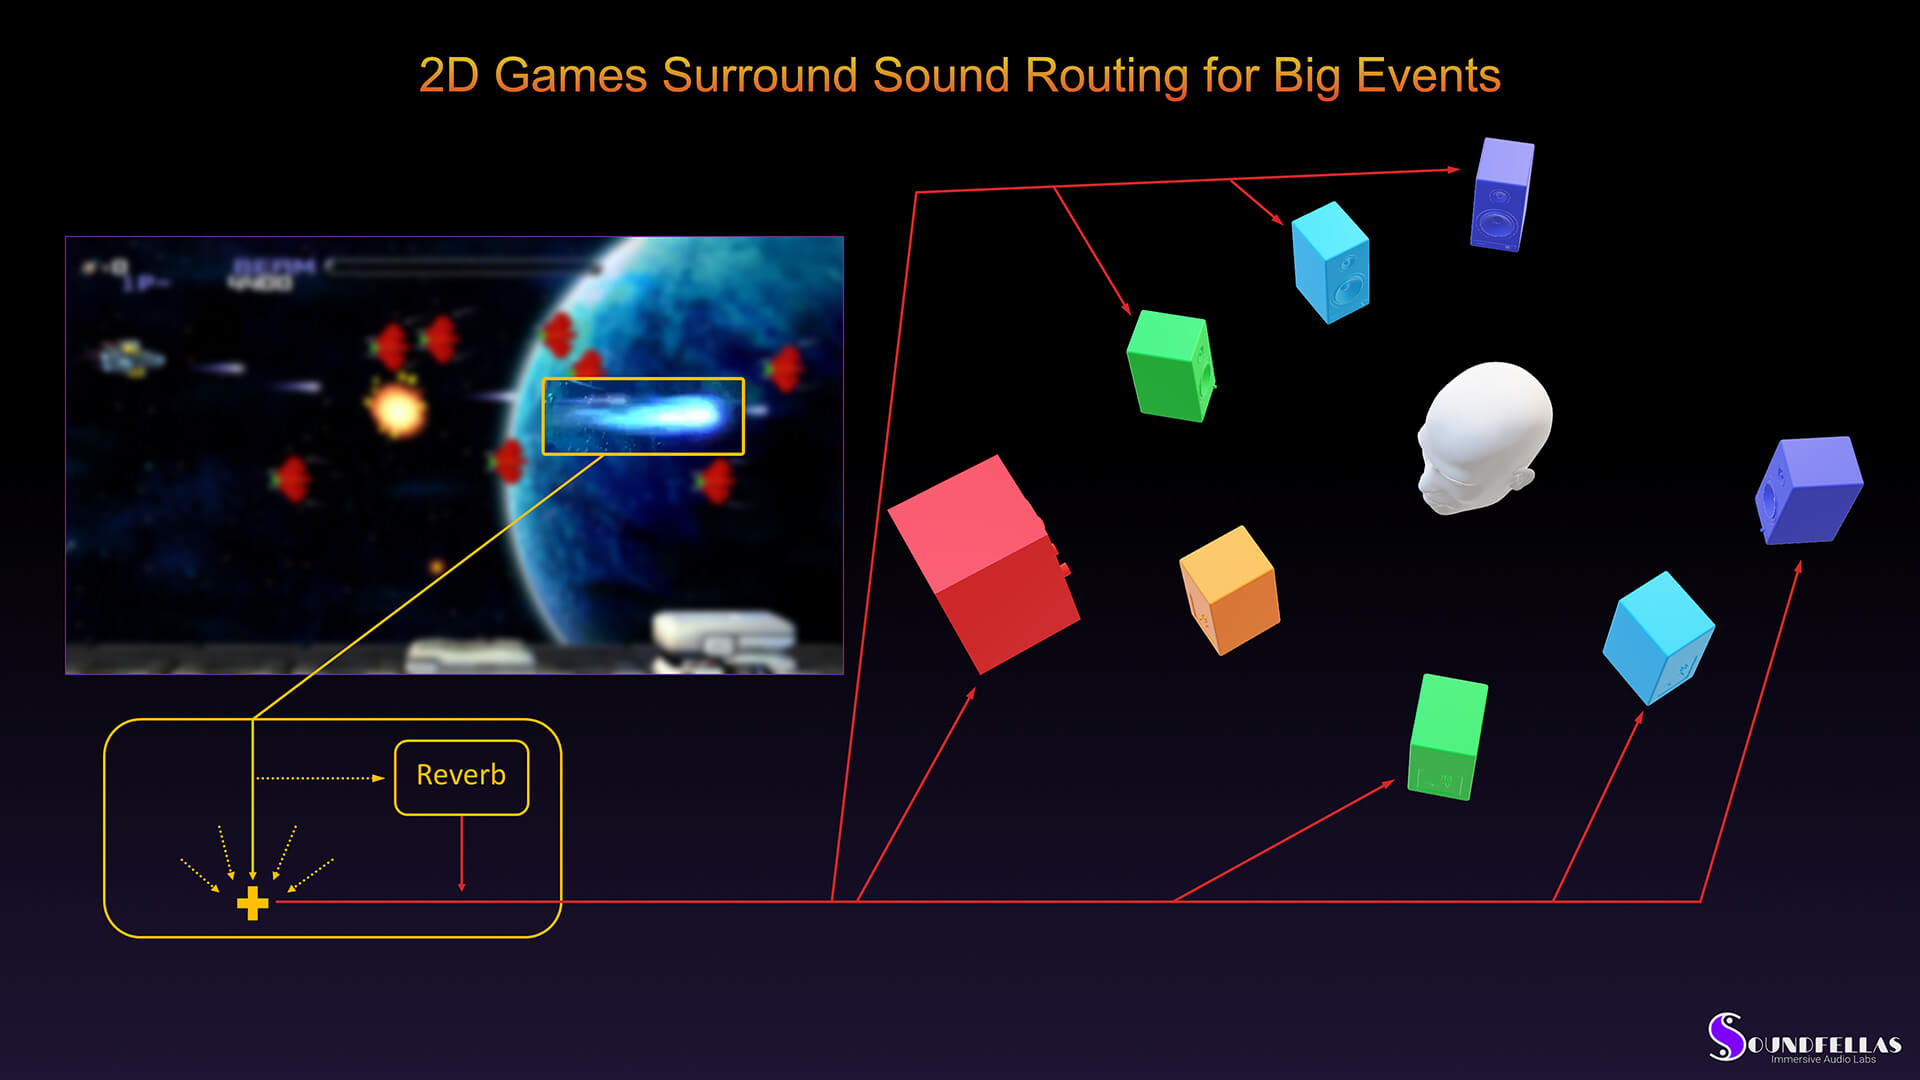 What 2D game developers fear about surround sound and why you should do it anyway page's image titled 2D game surround sound routing for big events